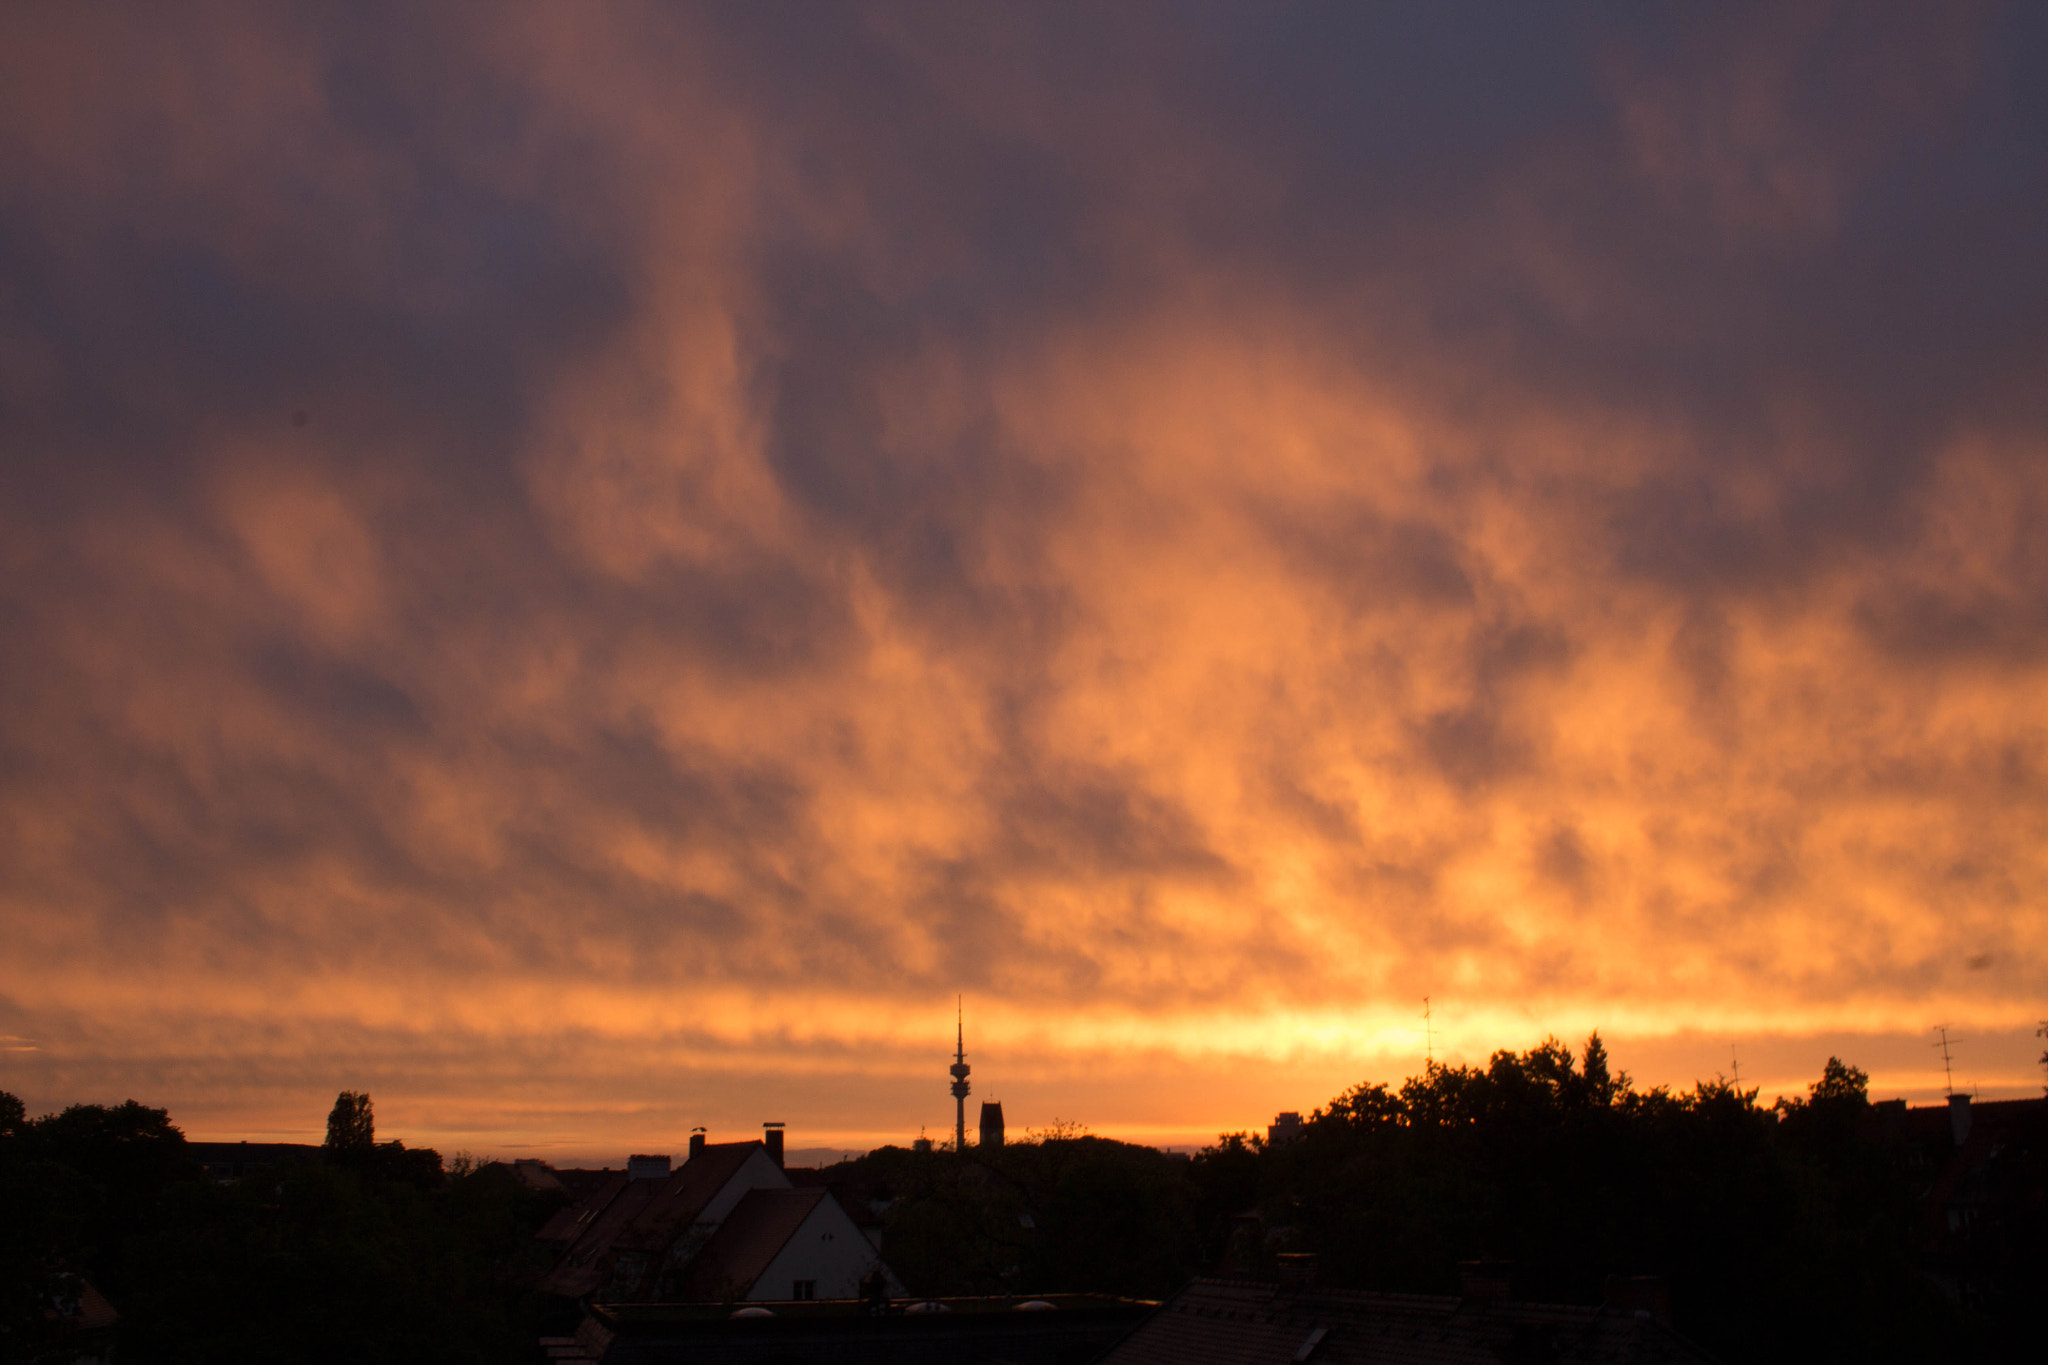 Photograph Sunset in Munich by Michael Röhle on 500px